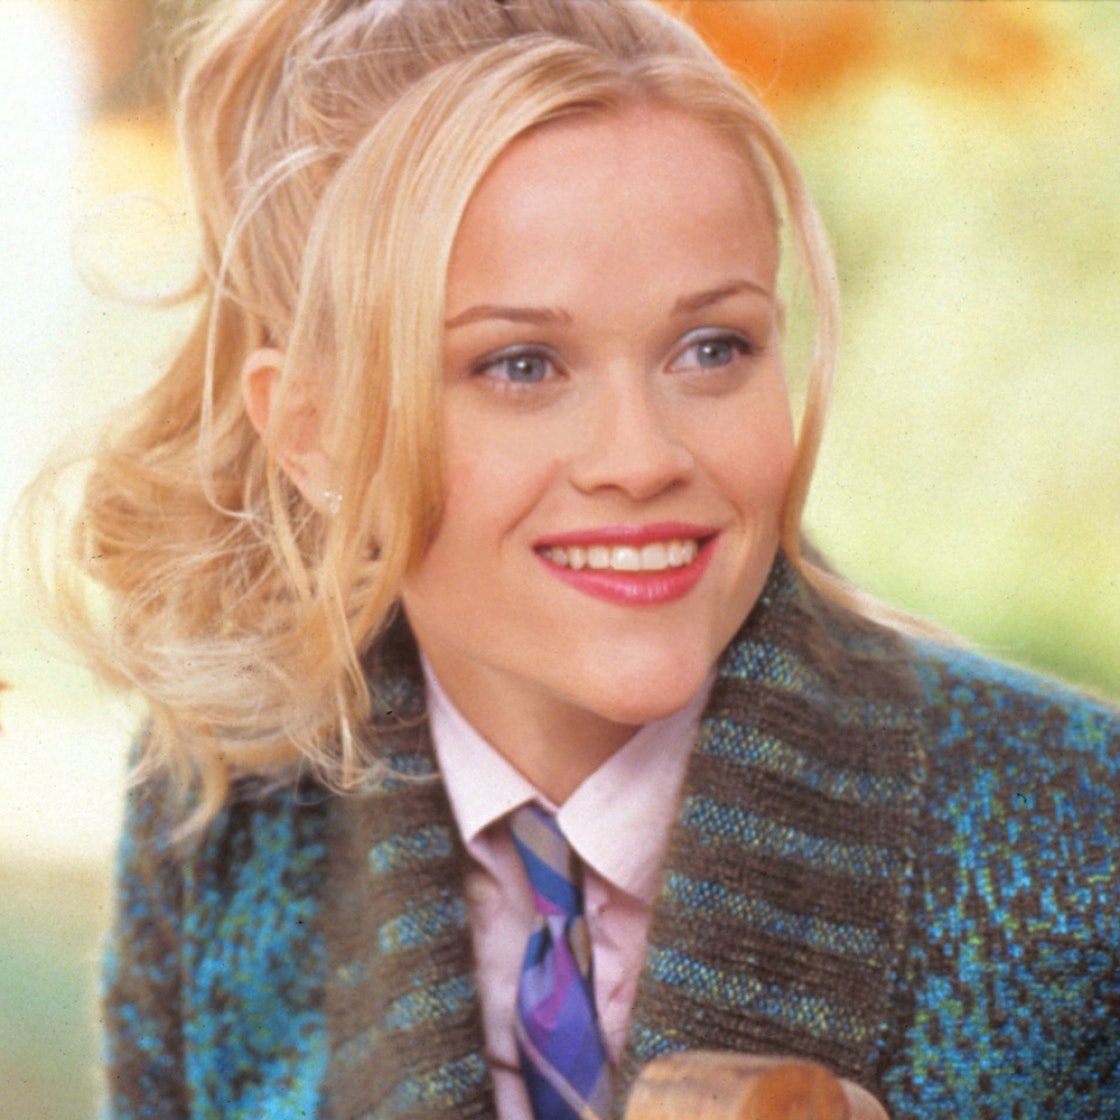 Is Legally Blonde Feminist? Reese Witherspoonu0027s Elle Woods ...